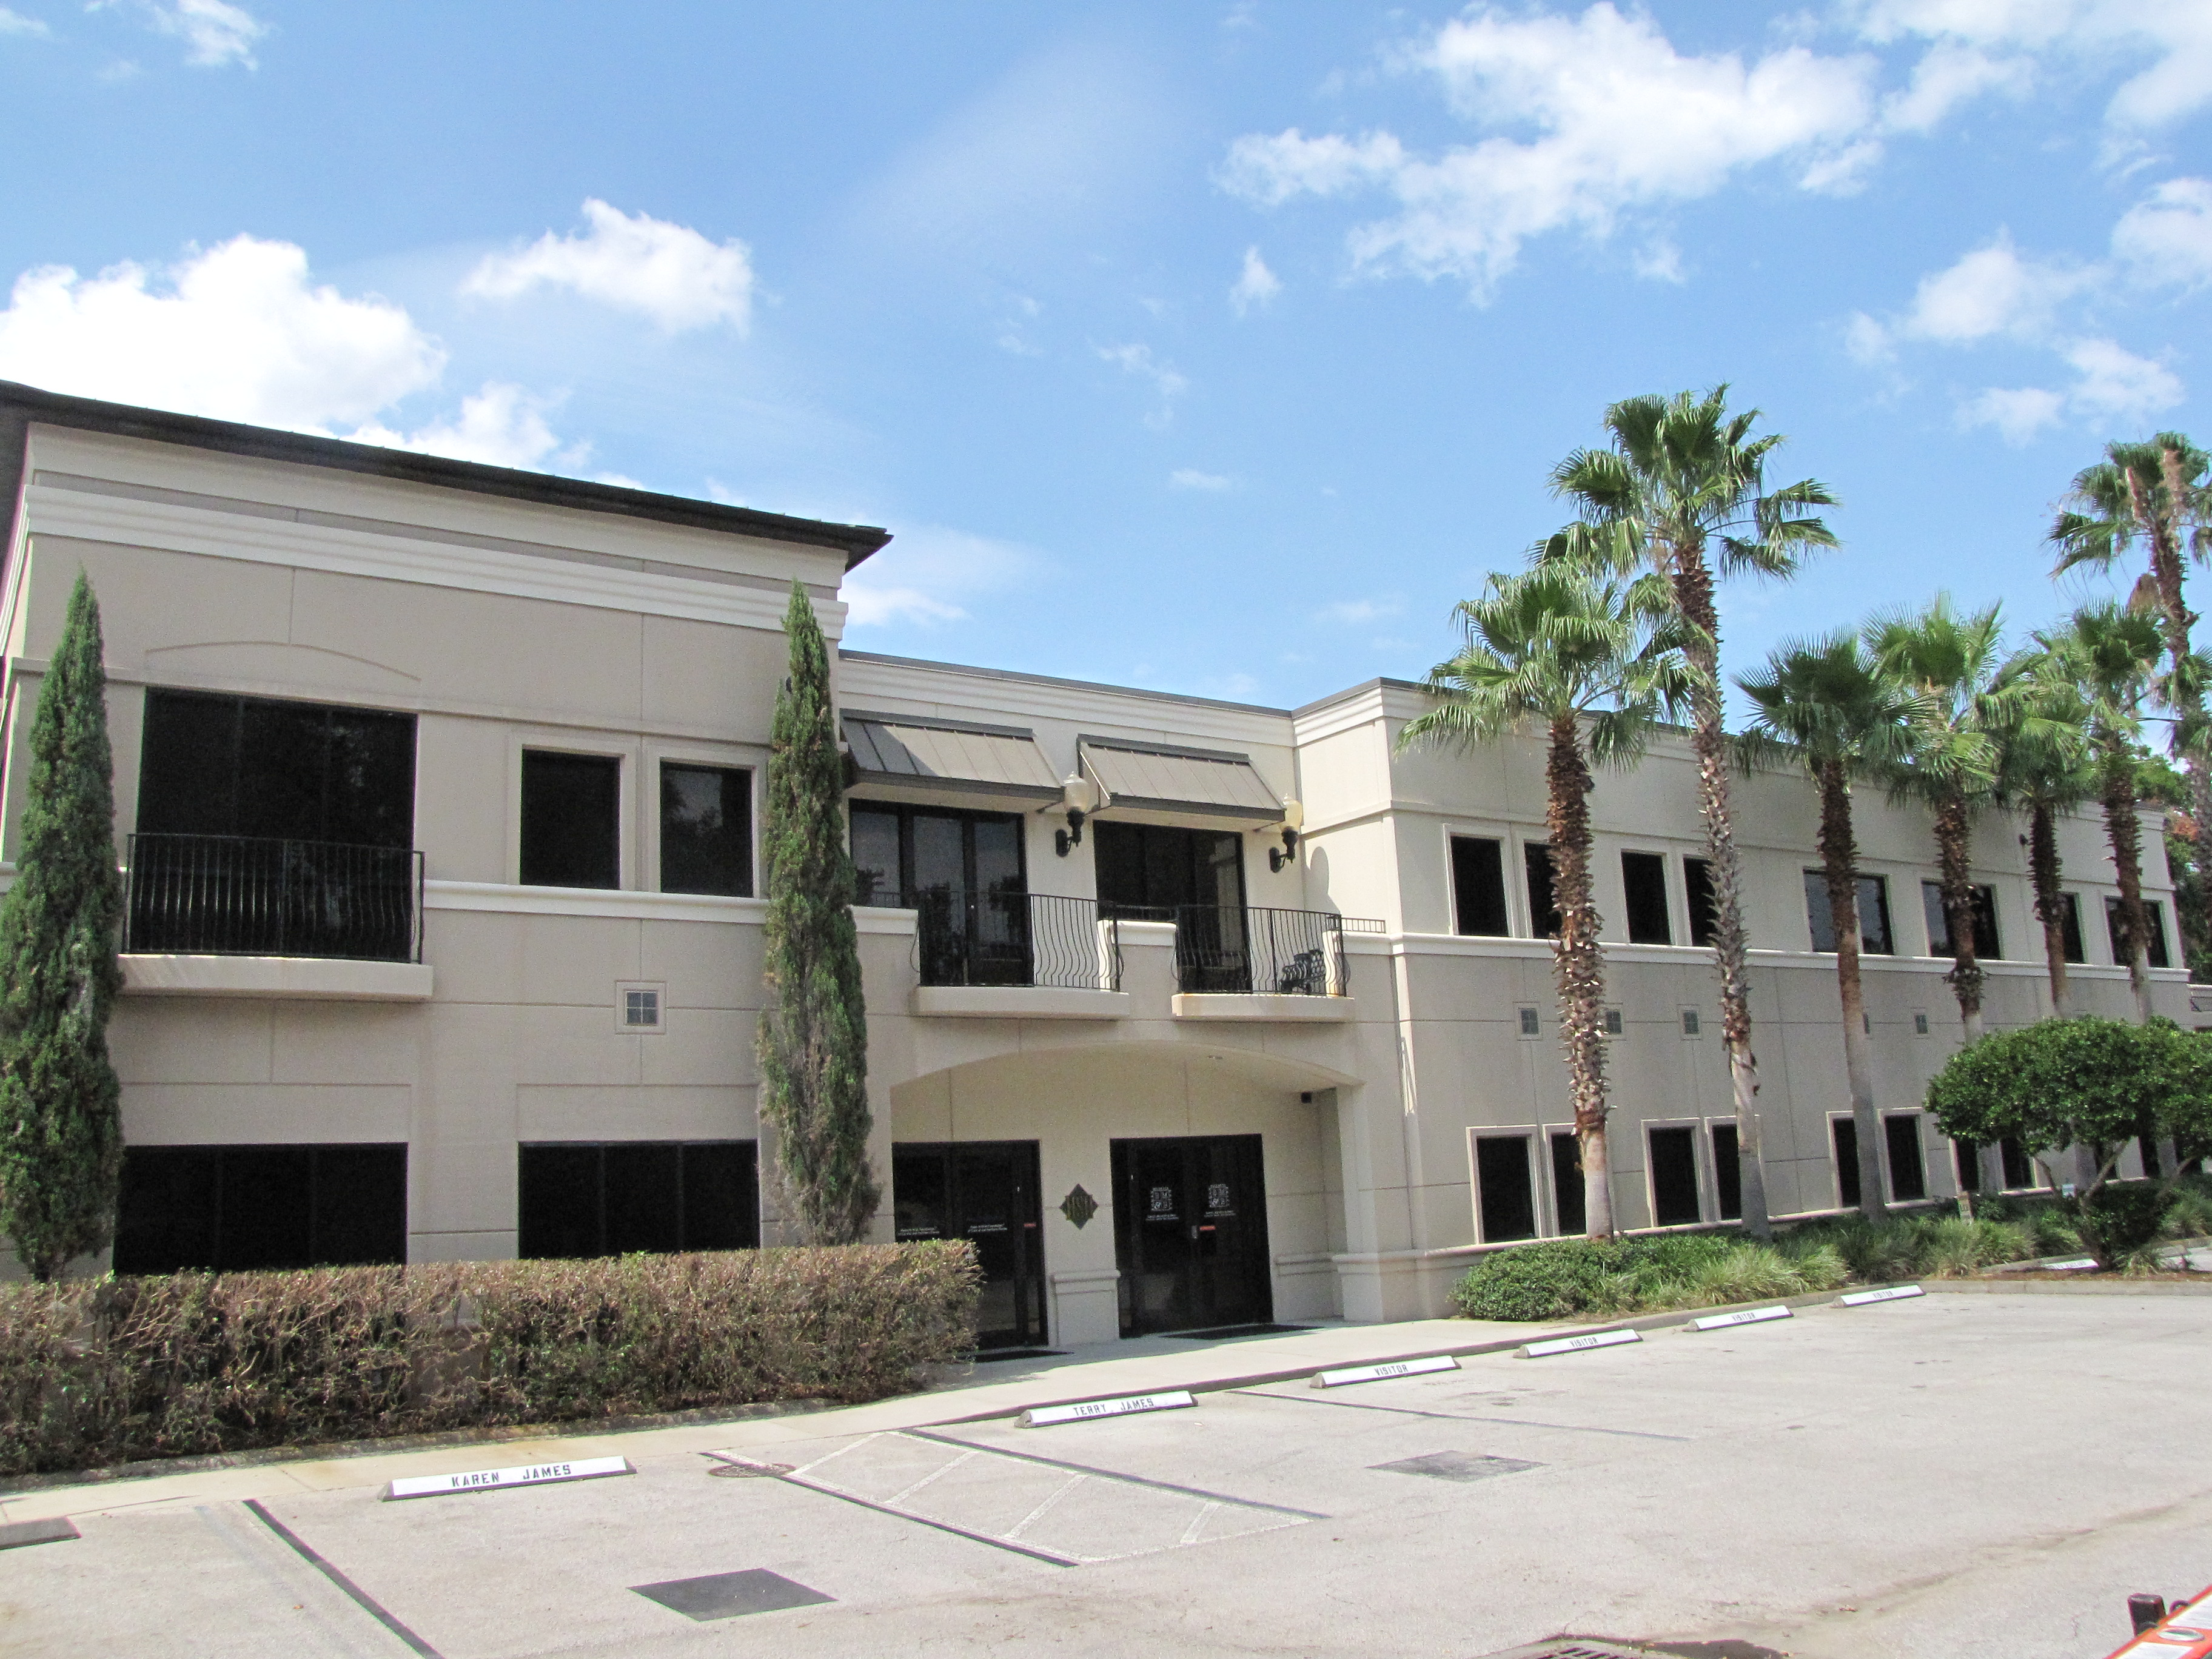 Commercial Building Pressure Washing Orlando Central